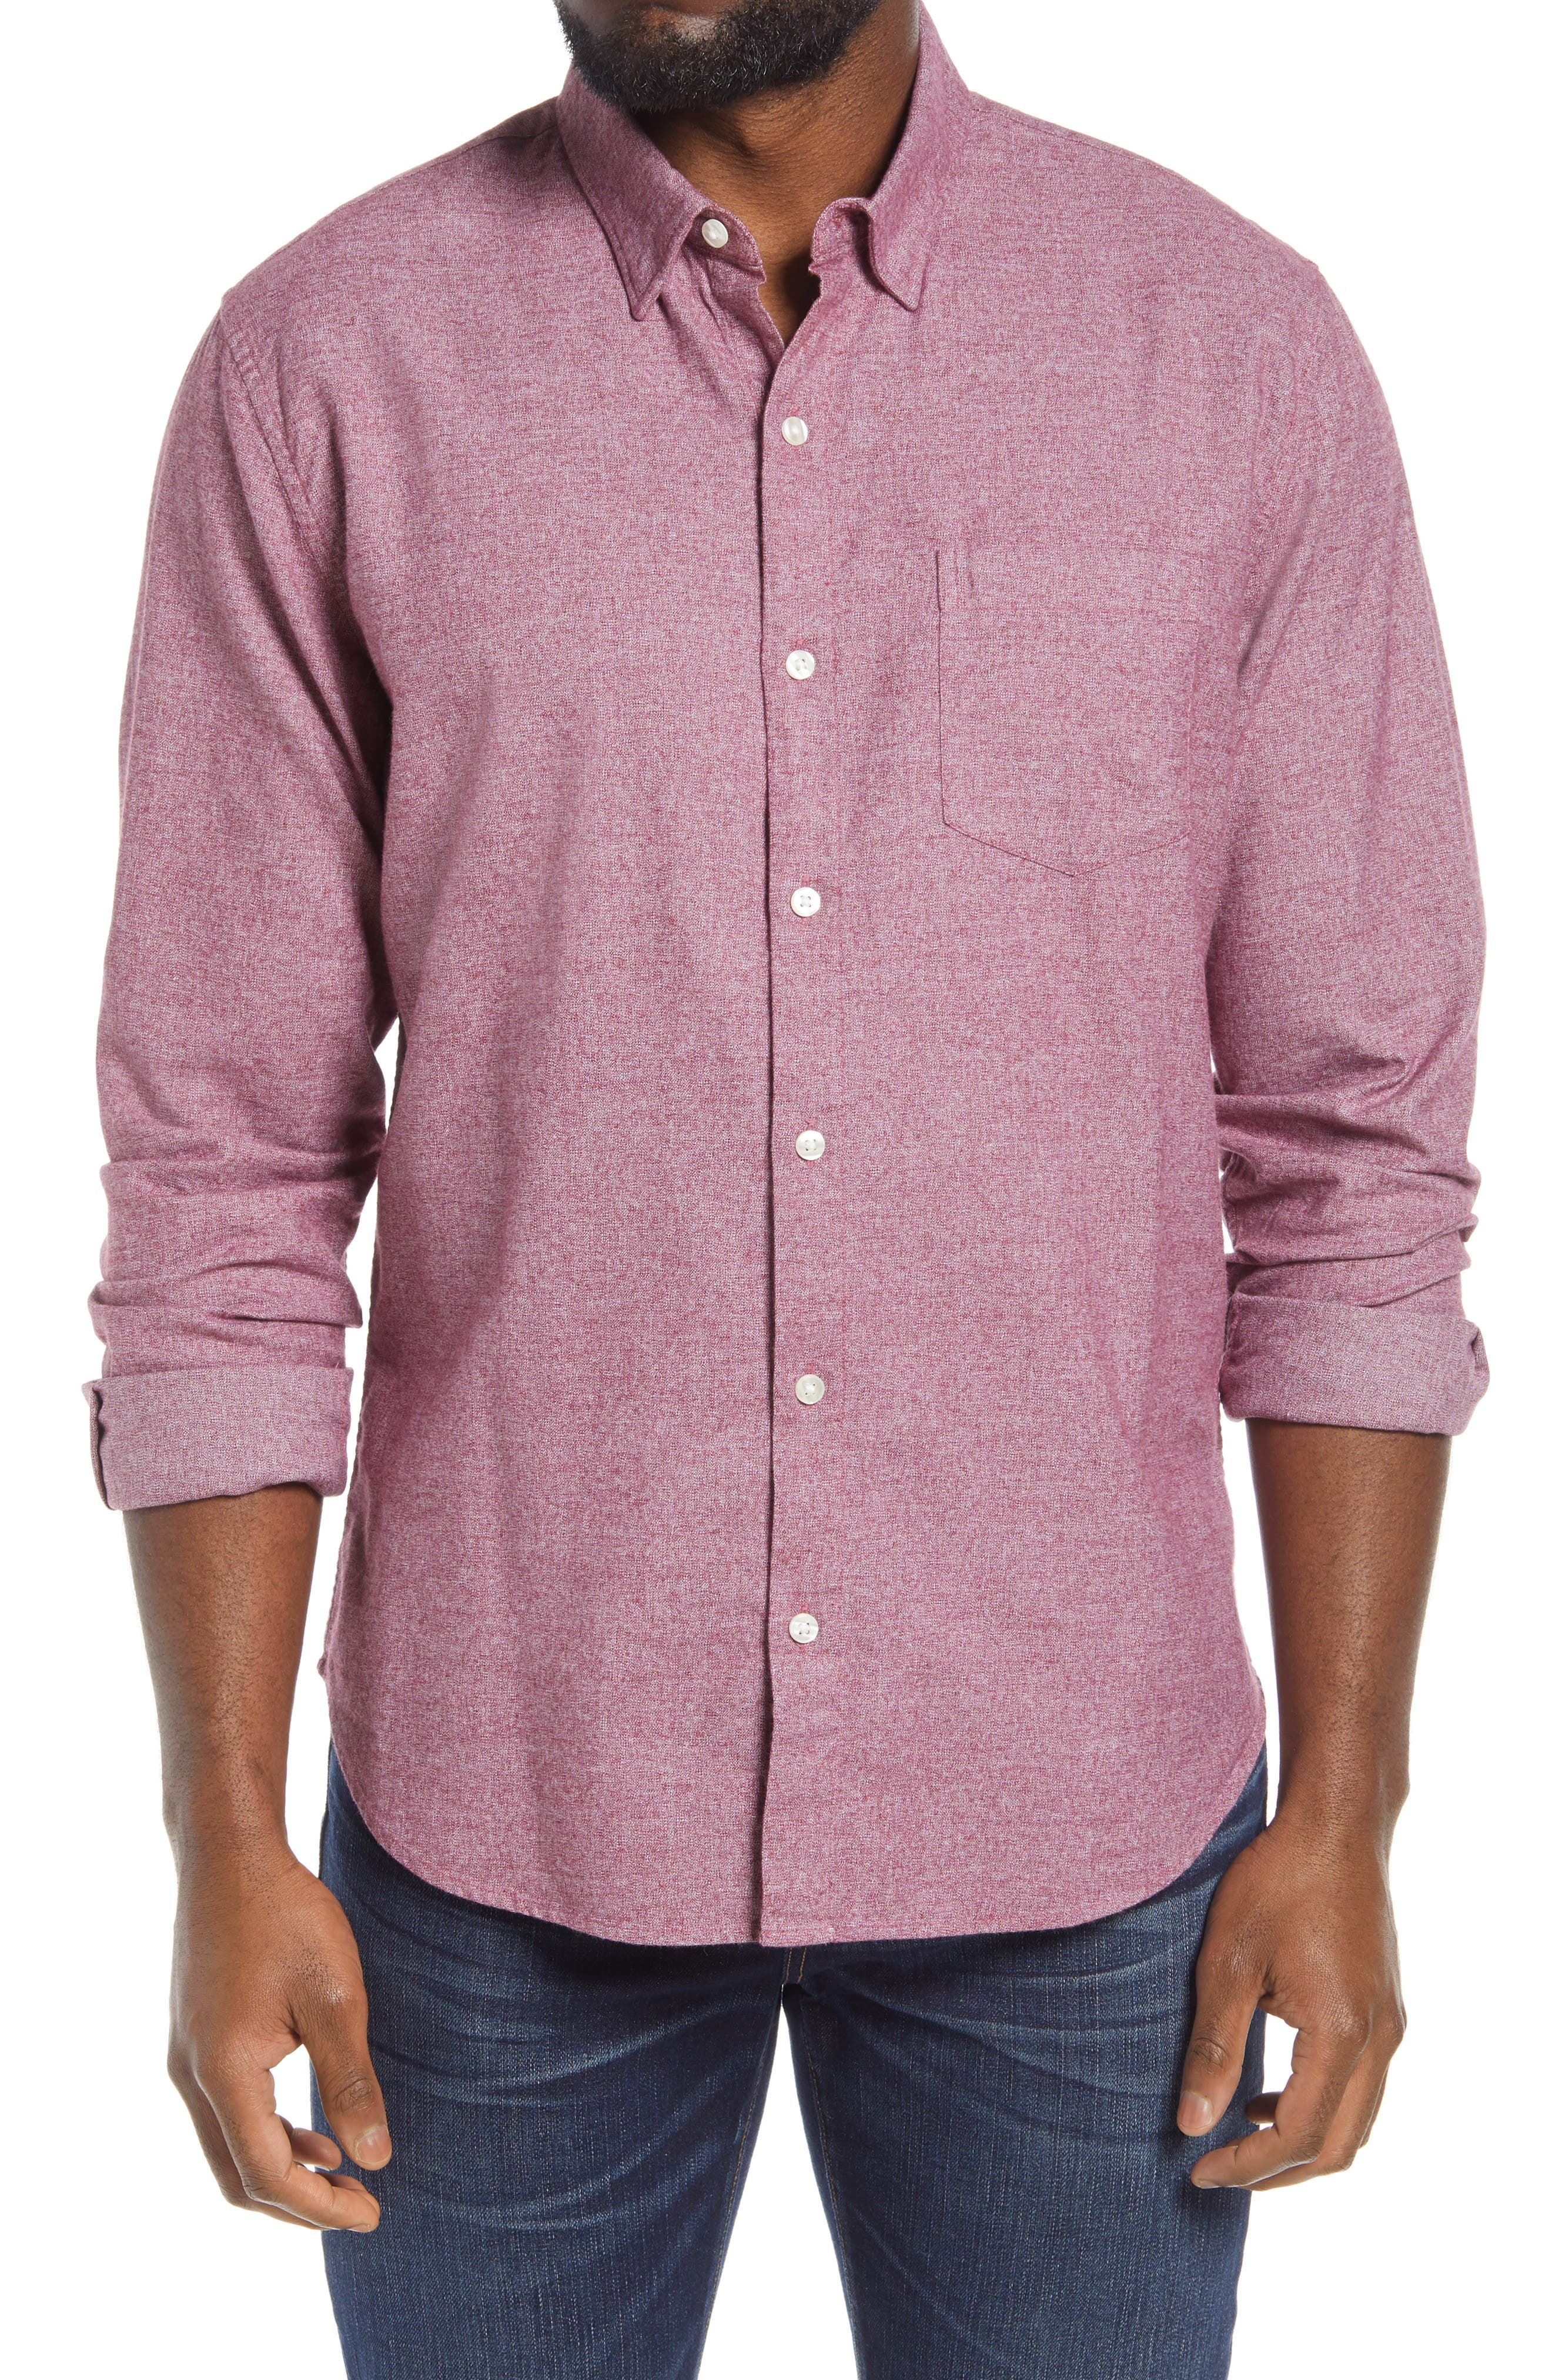 Brushed cotton construction adds a touch of texture to a slim-fit shirt with a smart hidden-button collar. Style Name: Bonobos Slim Fit Brushed Cotton Button-Up Shirt. Style Number: 6108039. Available in stores.